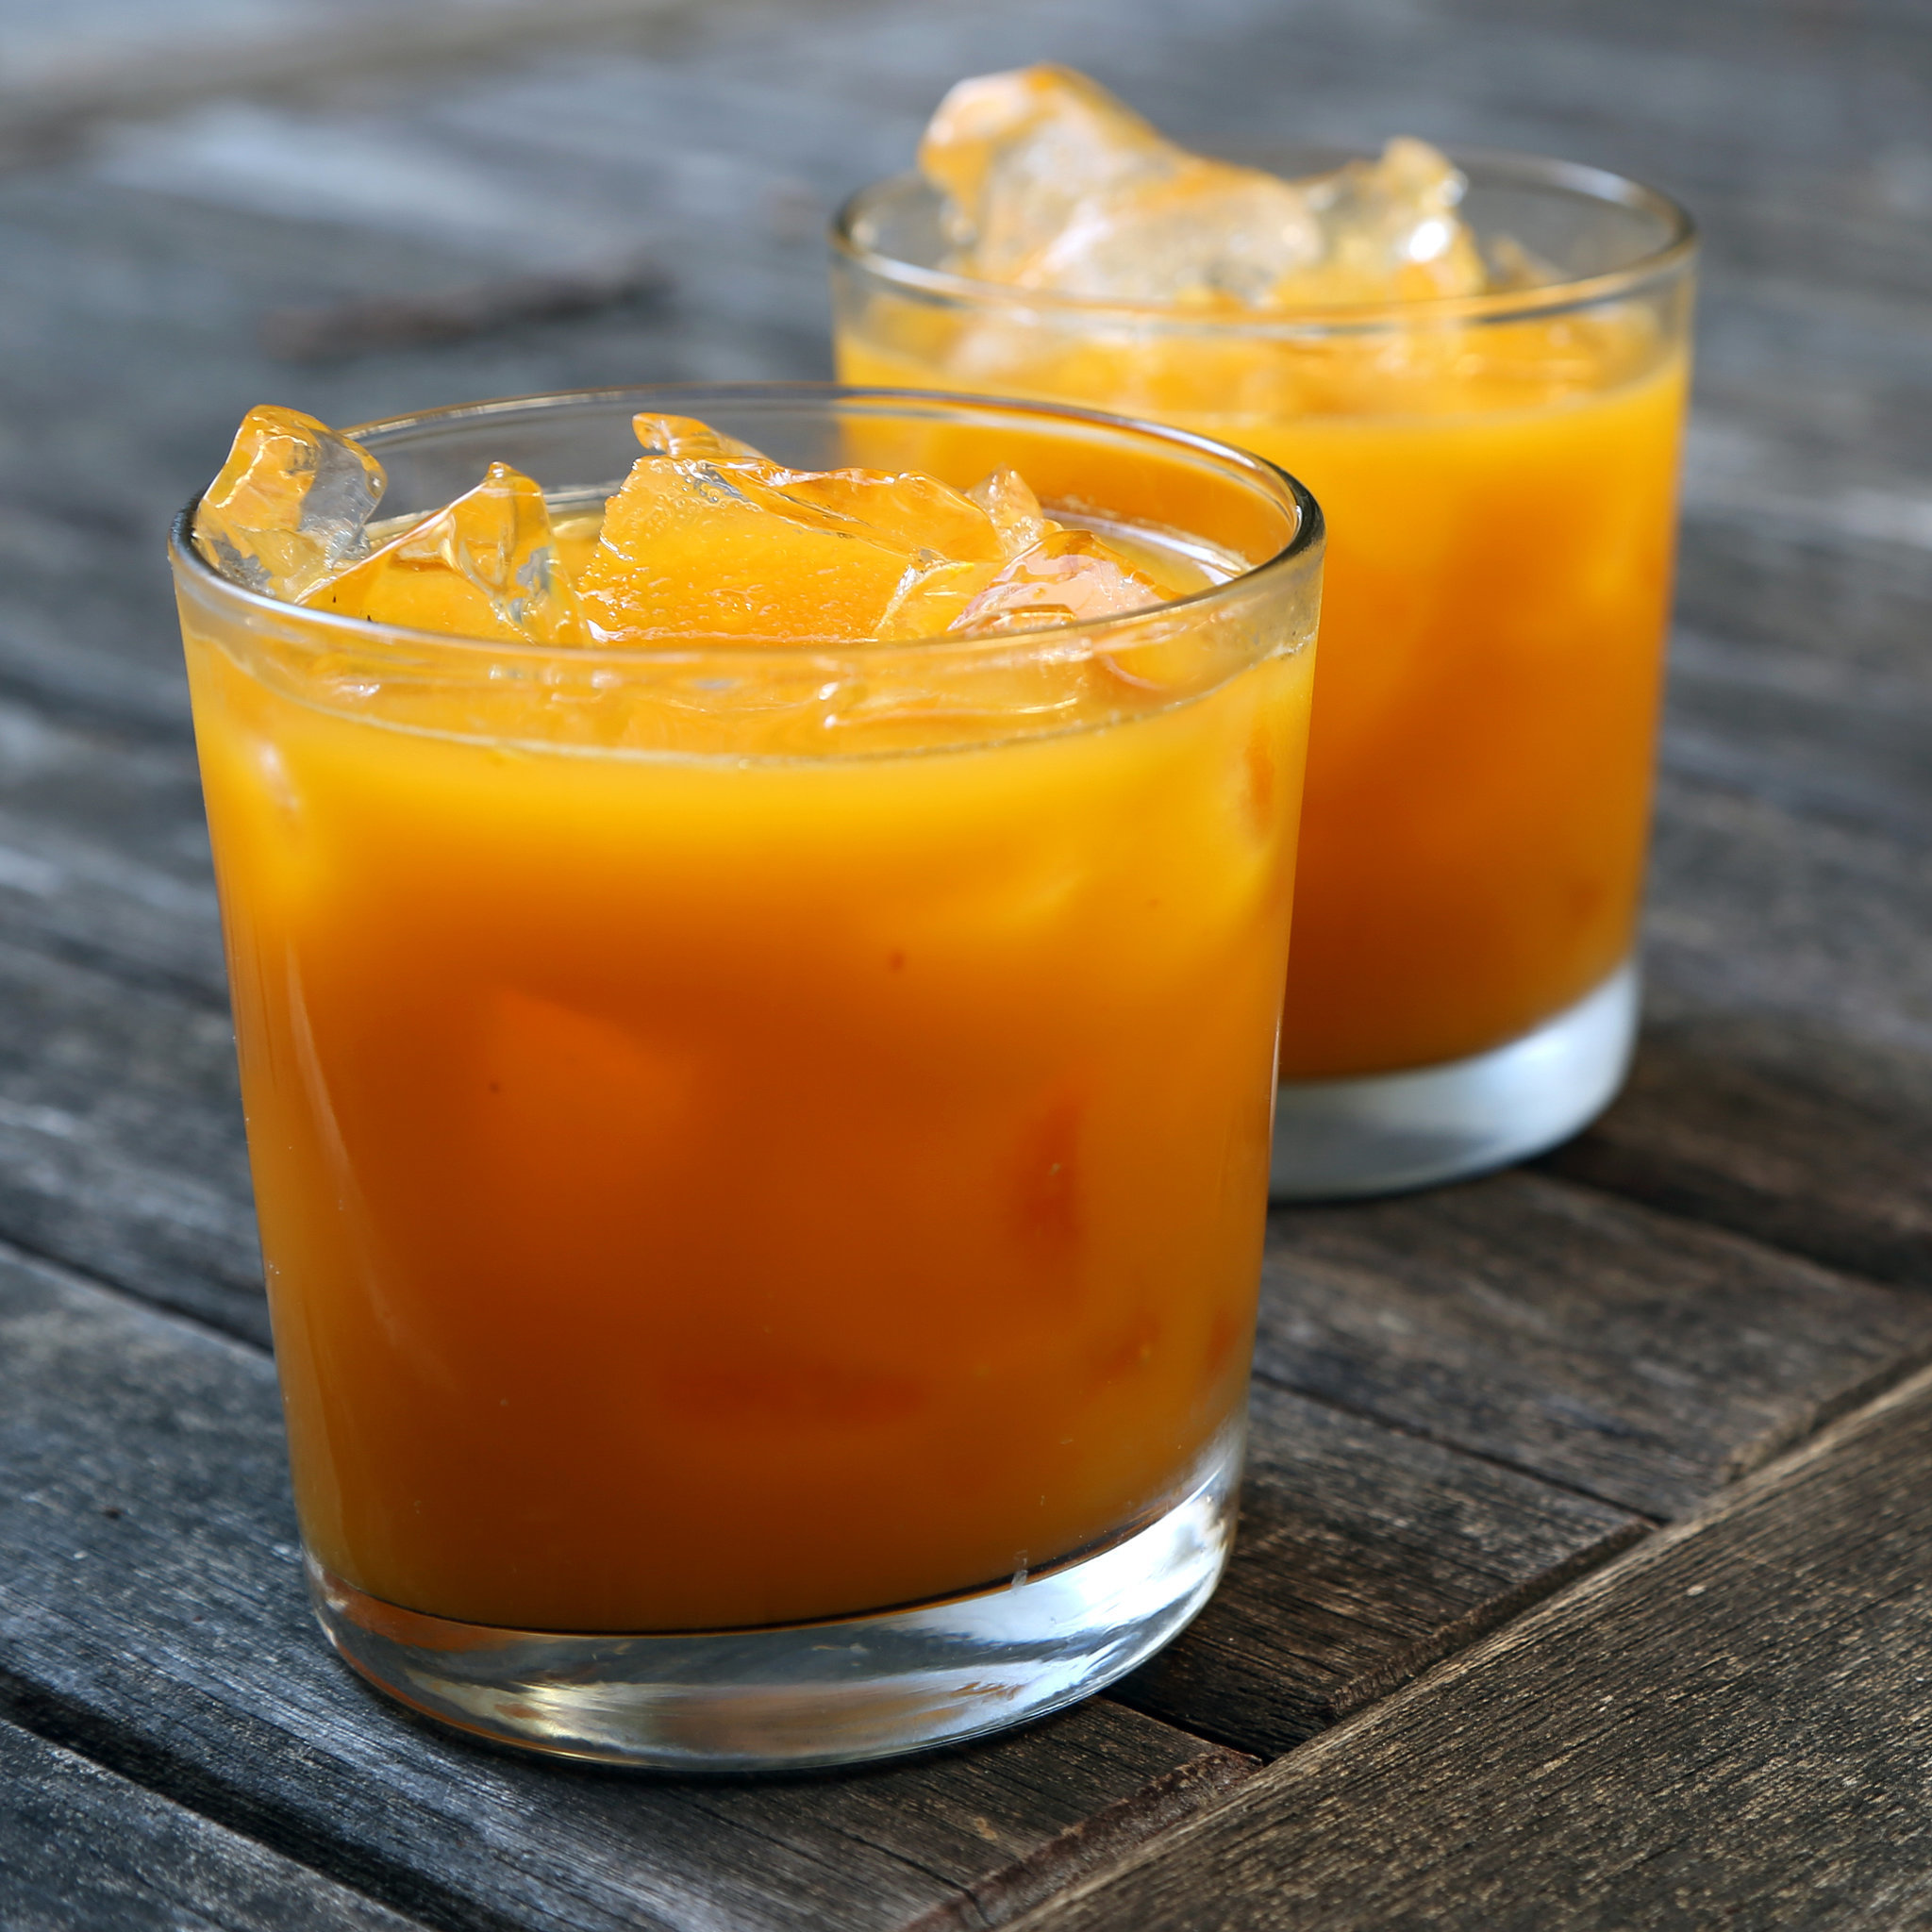 Pumpkin Juice : Muggles drink OJ, but wizards subside off of pumpkin ...